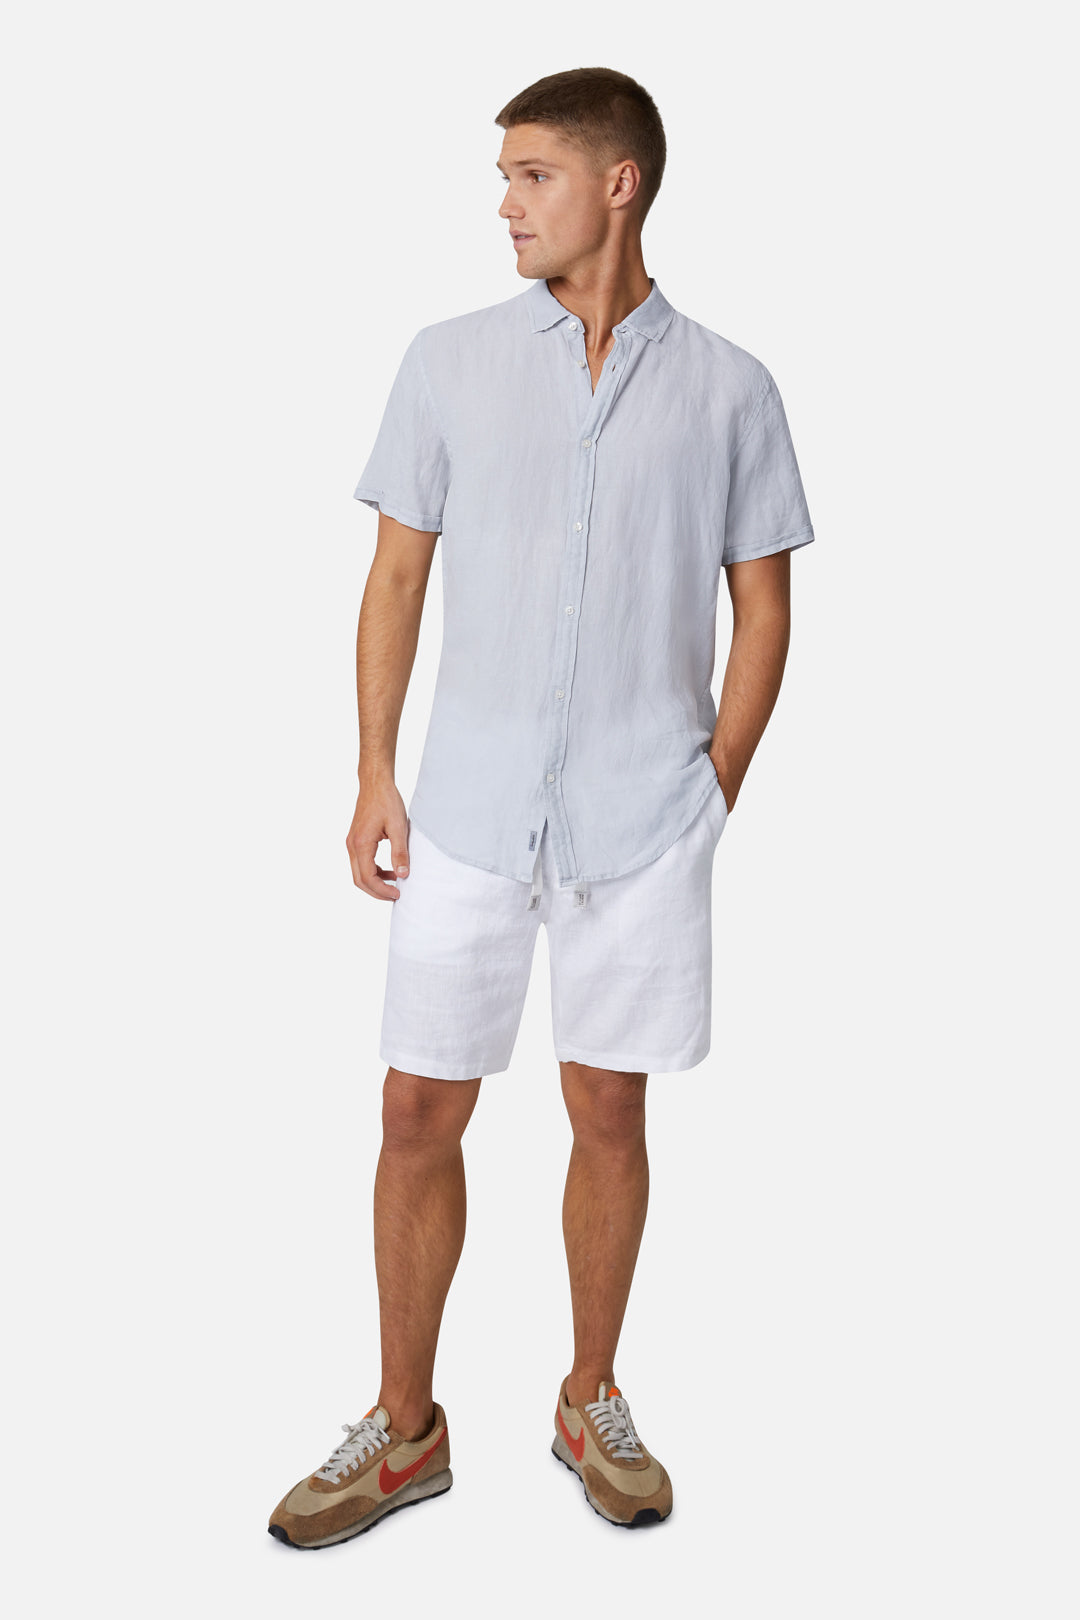 The Tennyson Linen S/S Shirt - Posh Grey